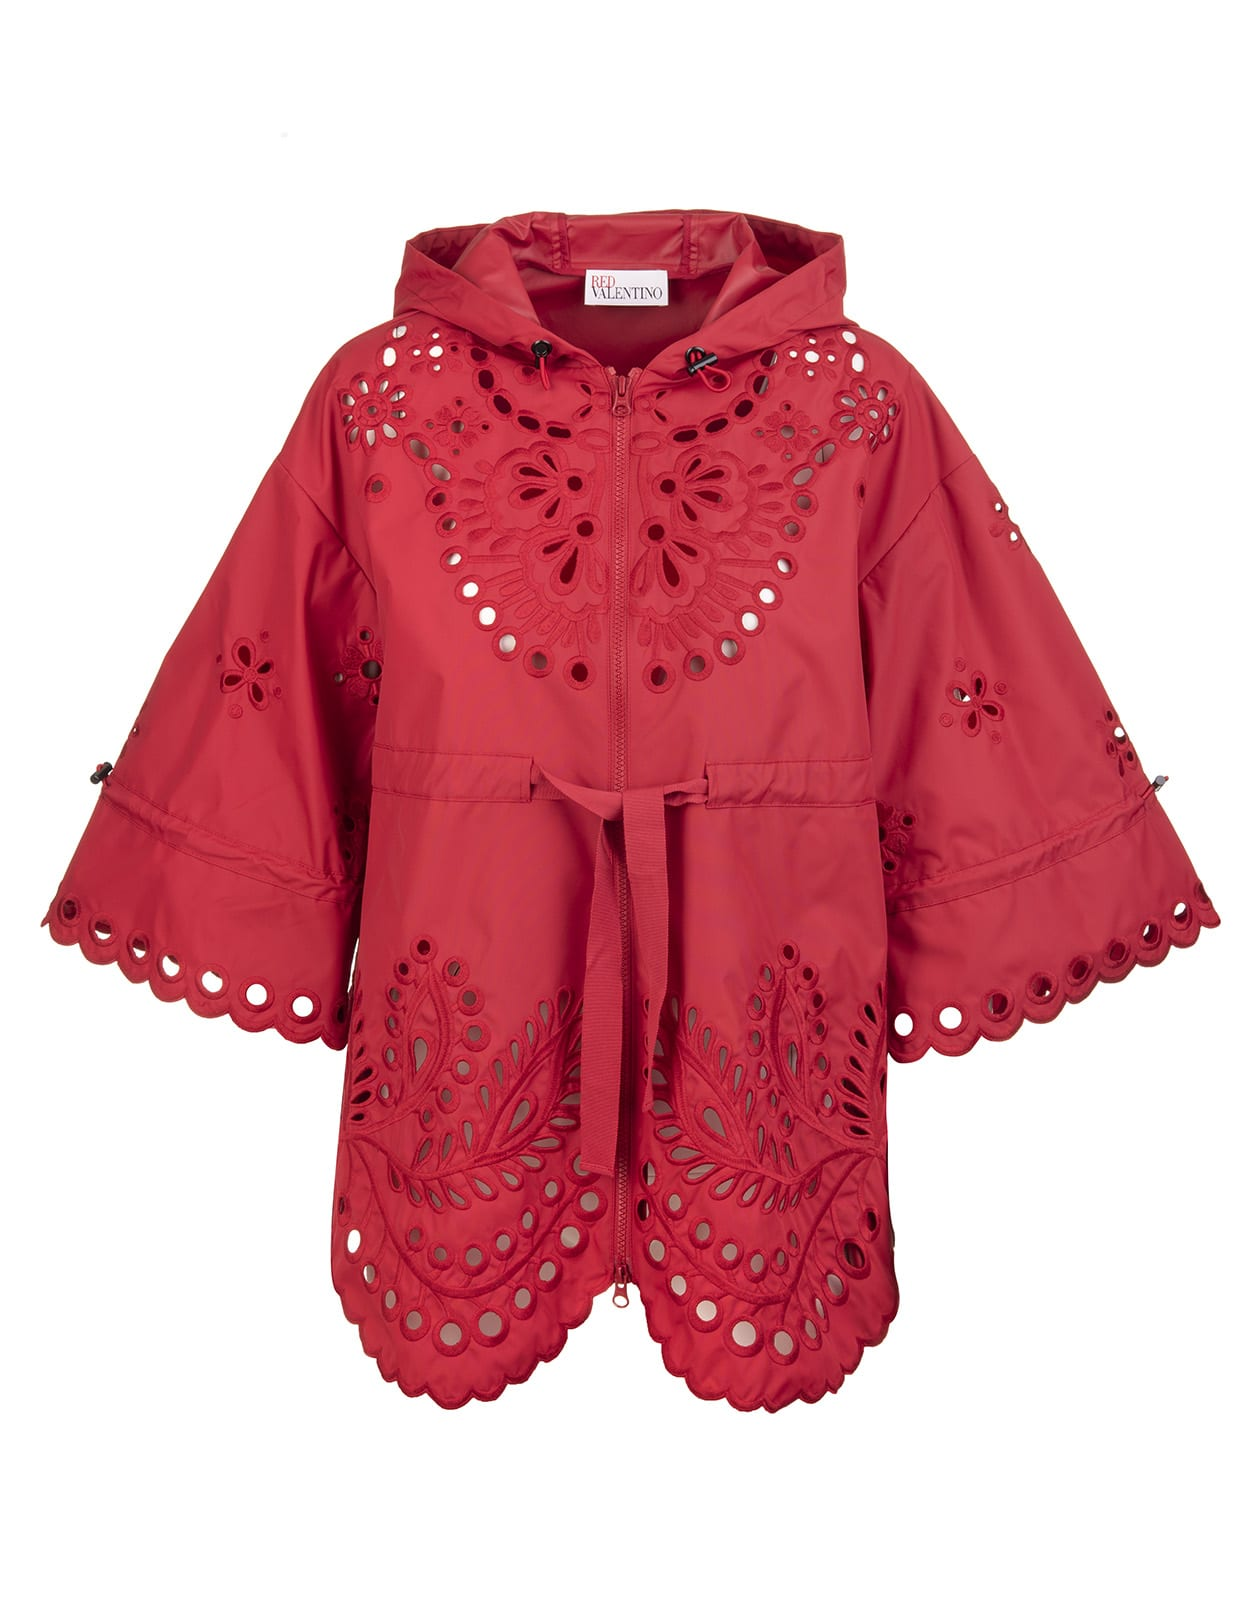 RED Valentino Cherry-red Floral Embroidery Hooded Jacket